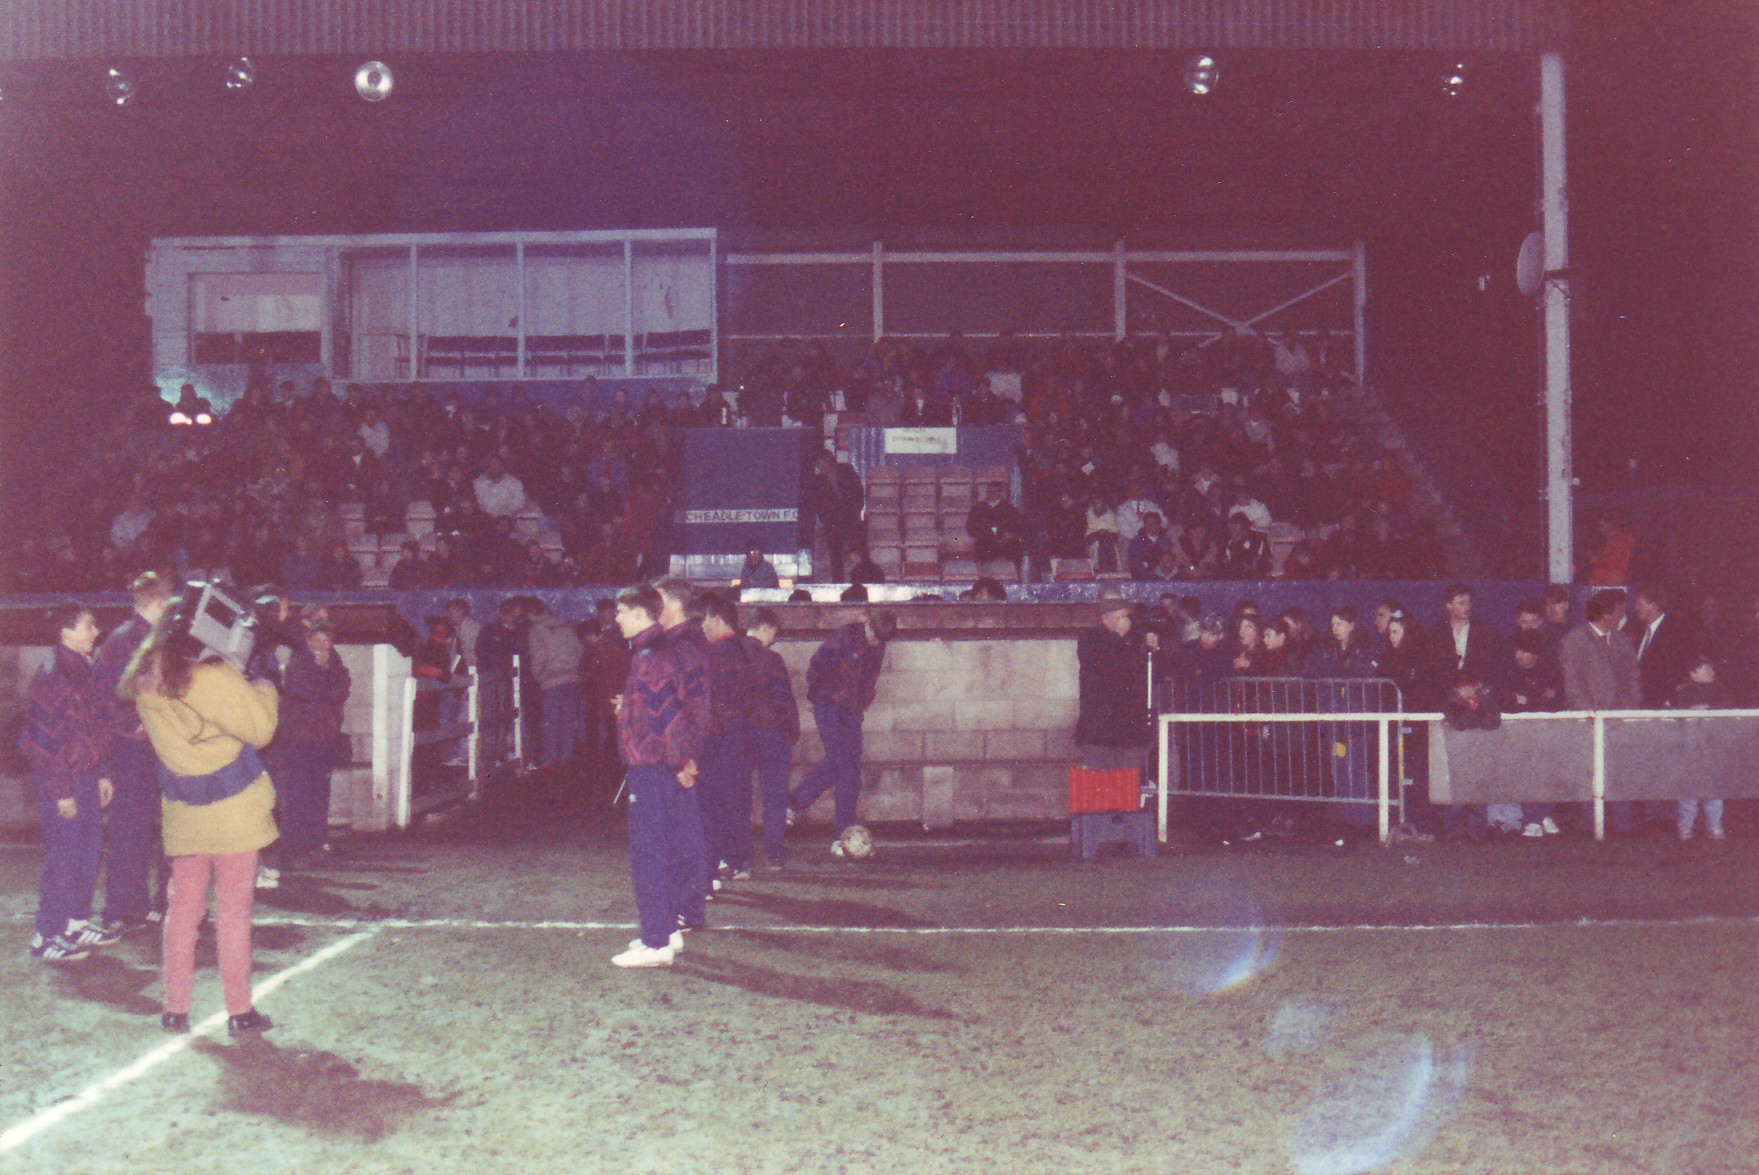 Cheadle Town v Manchester United, 1995. The first match under floodlights at Park Road. The result was 2-2 with the United team featuring a young Jon Macken who went on to play for Preston North End and Manchester City.